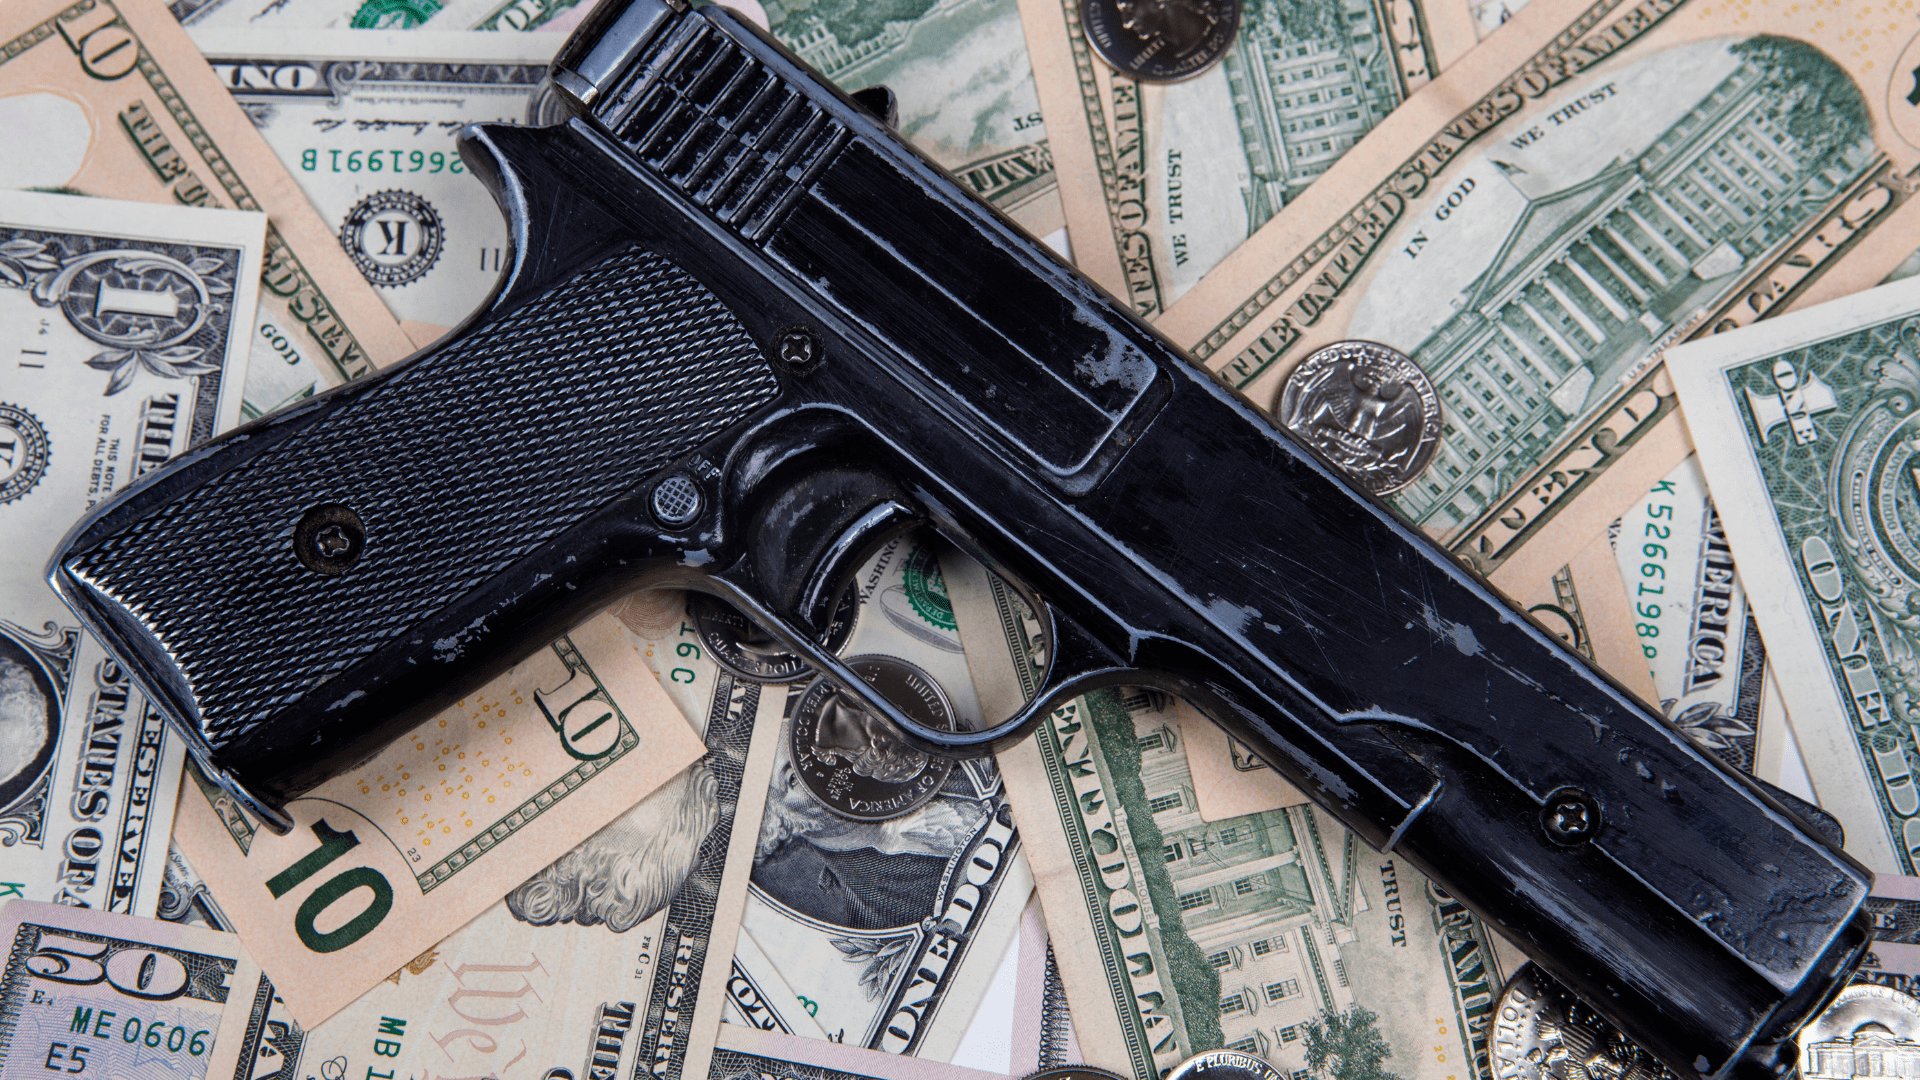 BANKS AND GUNS DON'T MIX – OR DO THEY_